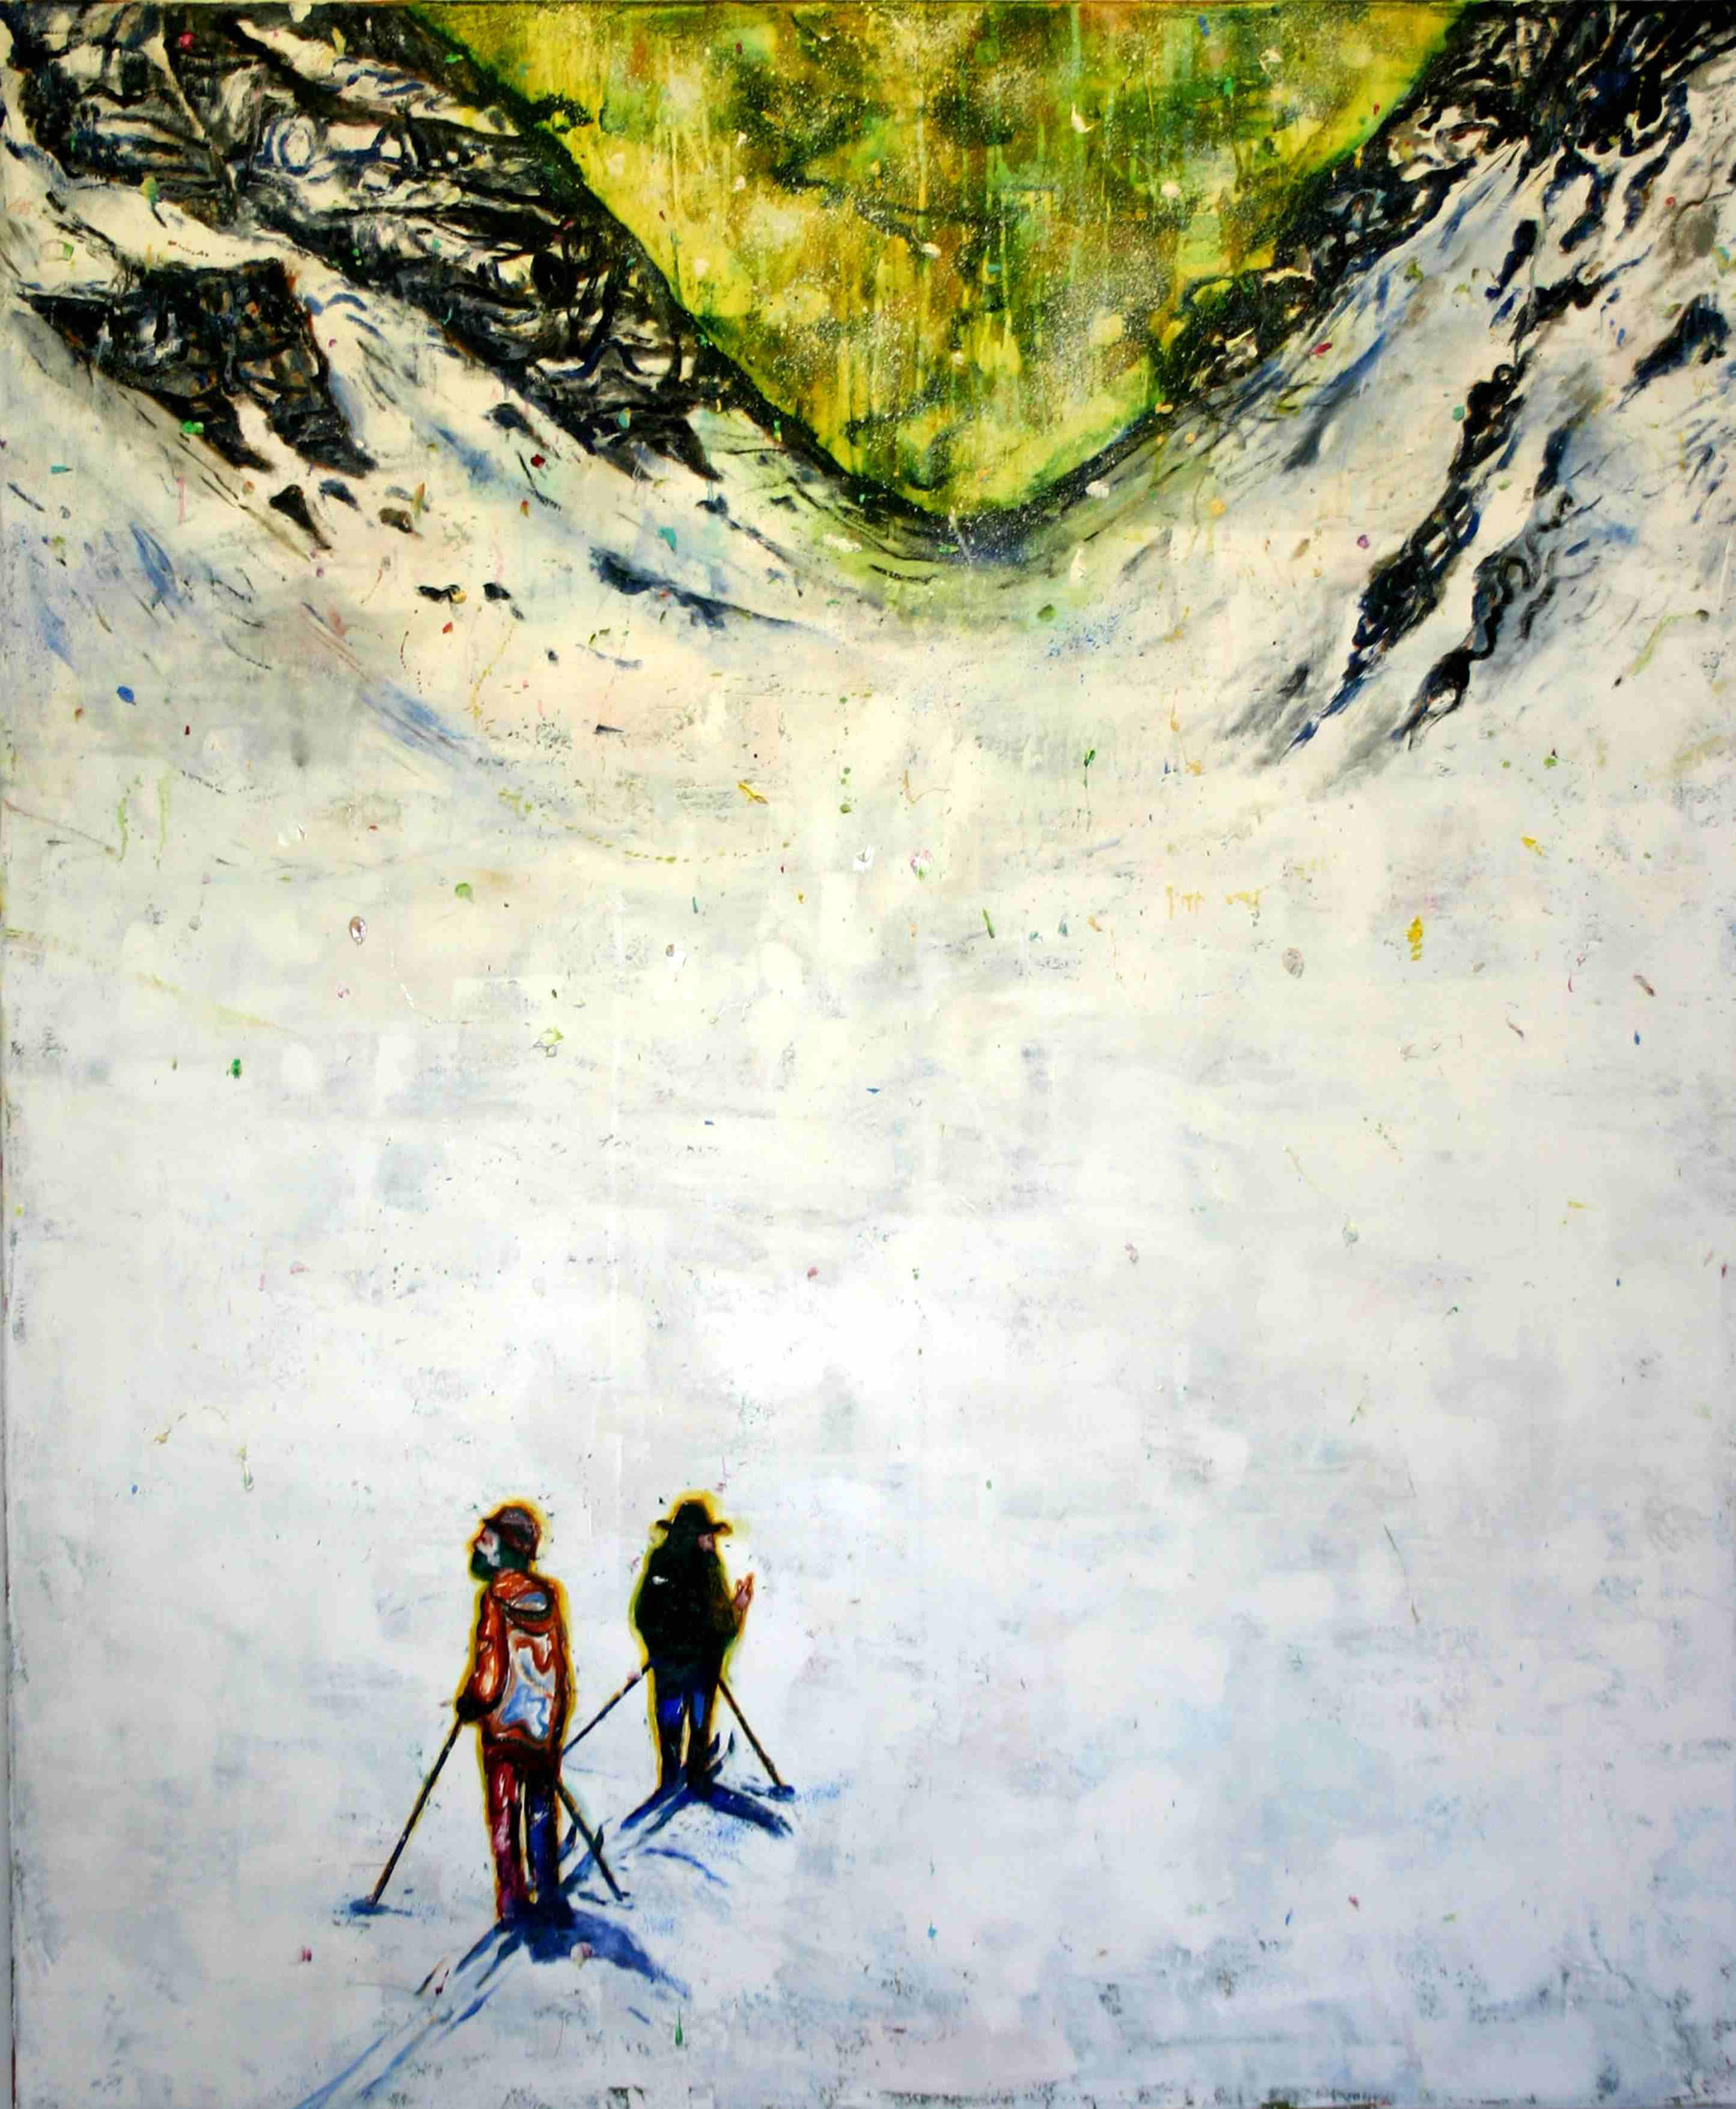 Olle Schmidt, Explorer 1, 2016, oil on canvas, 145 x 120 cm